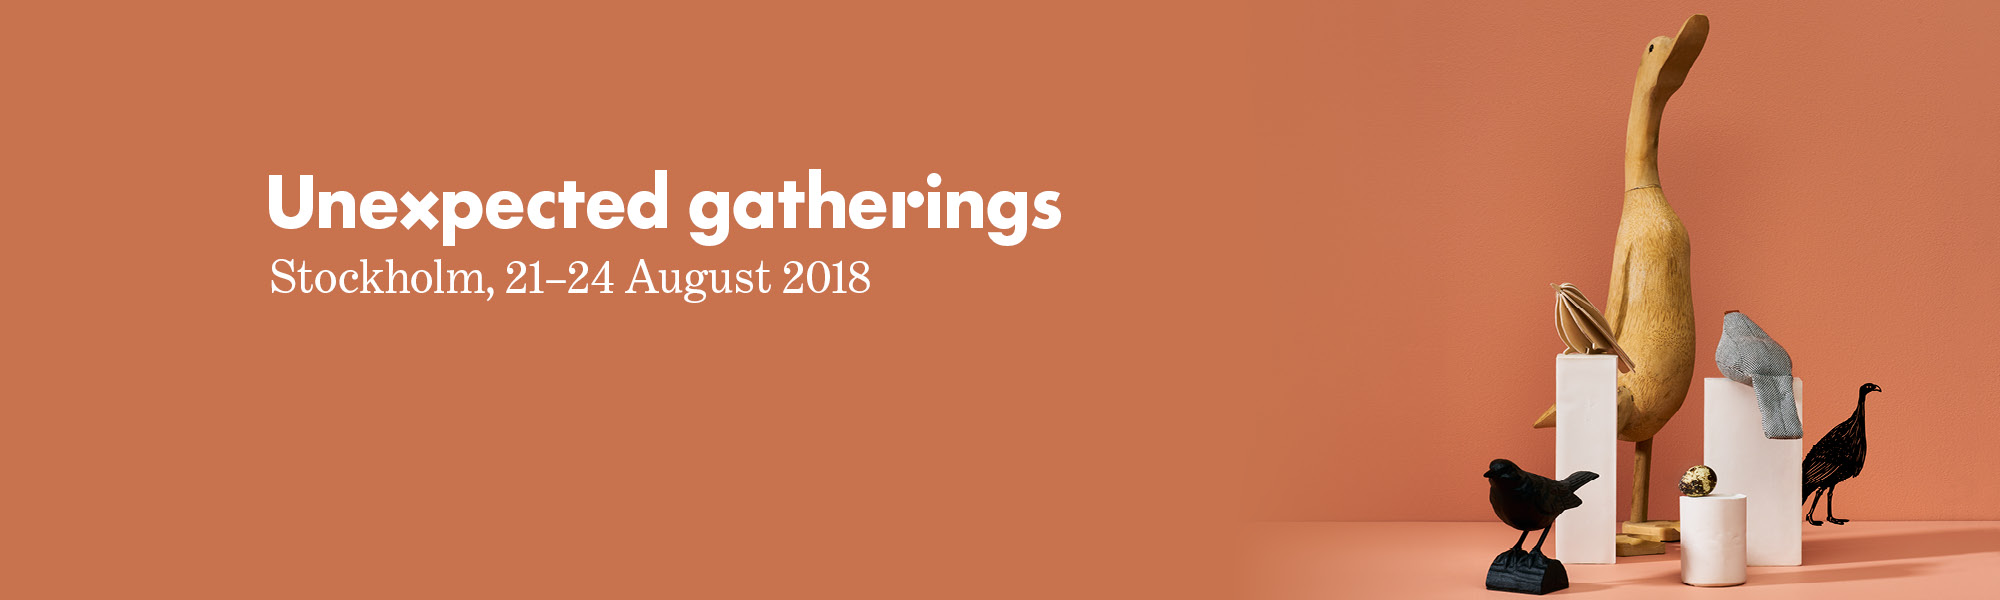 Unexpected gatherings Formex 2018